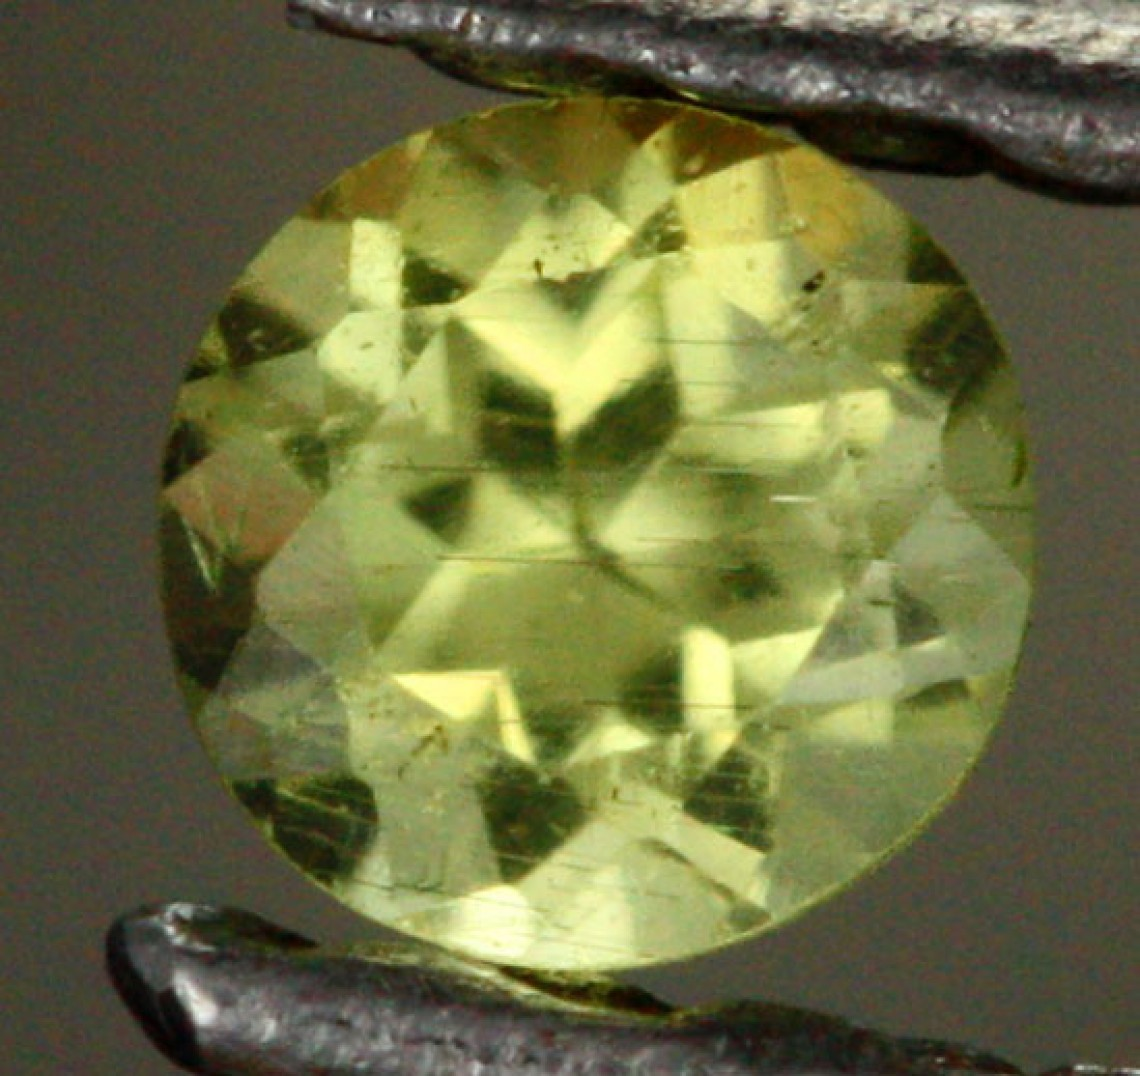 Space Stones - Gems That Originated in Outer Space